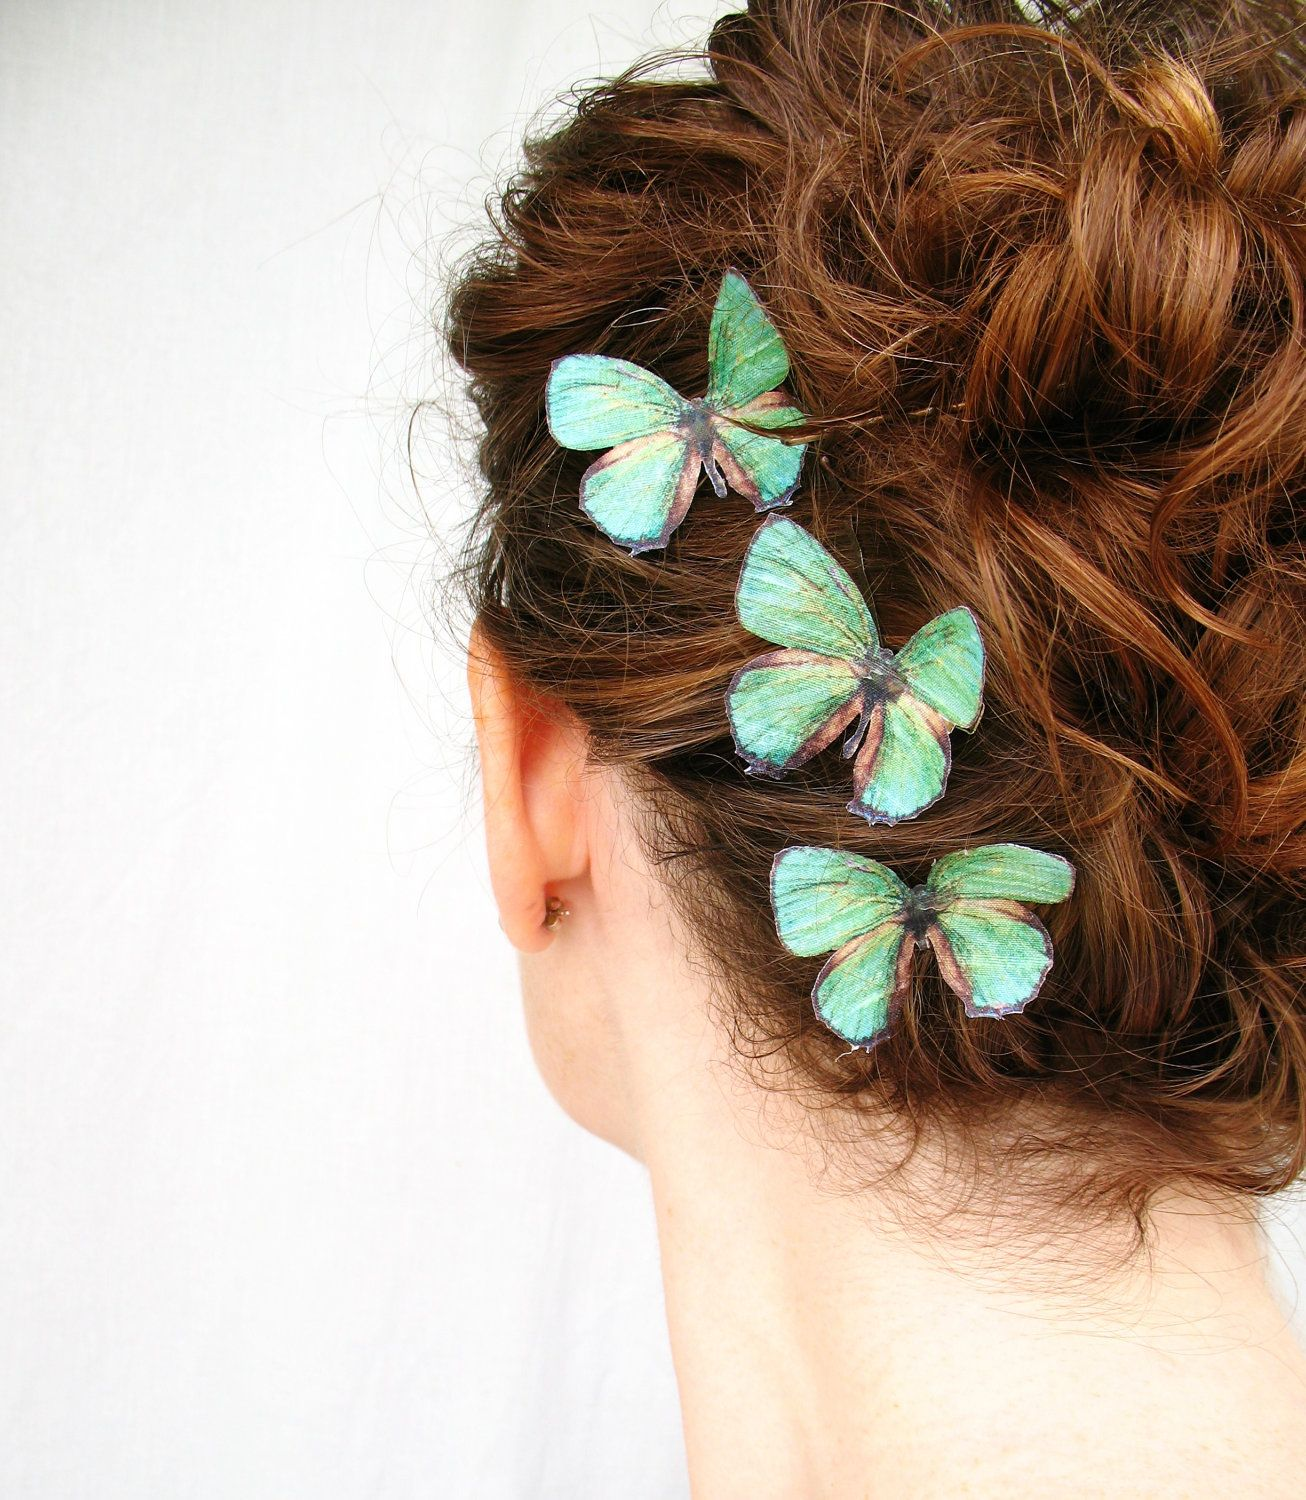 Butterfly hair accessories for weddings uk - Three Handmade Emerald Green Silk Butterfly Hair Clips Emerald Gypsies Pure Dupioni